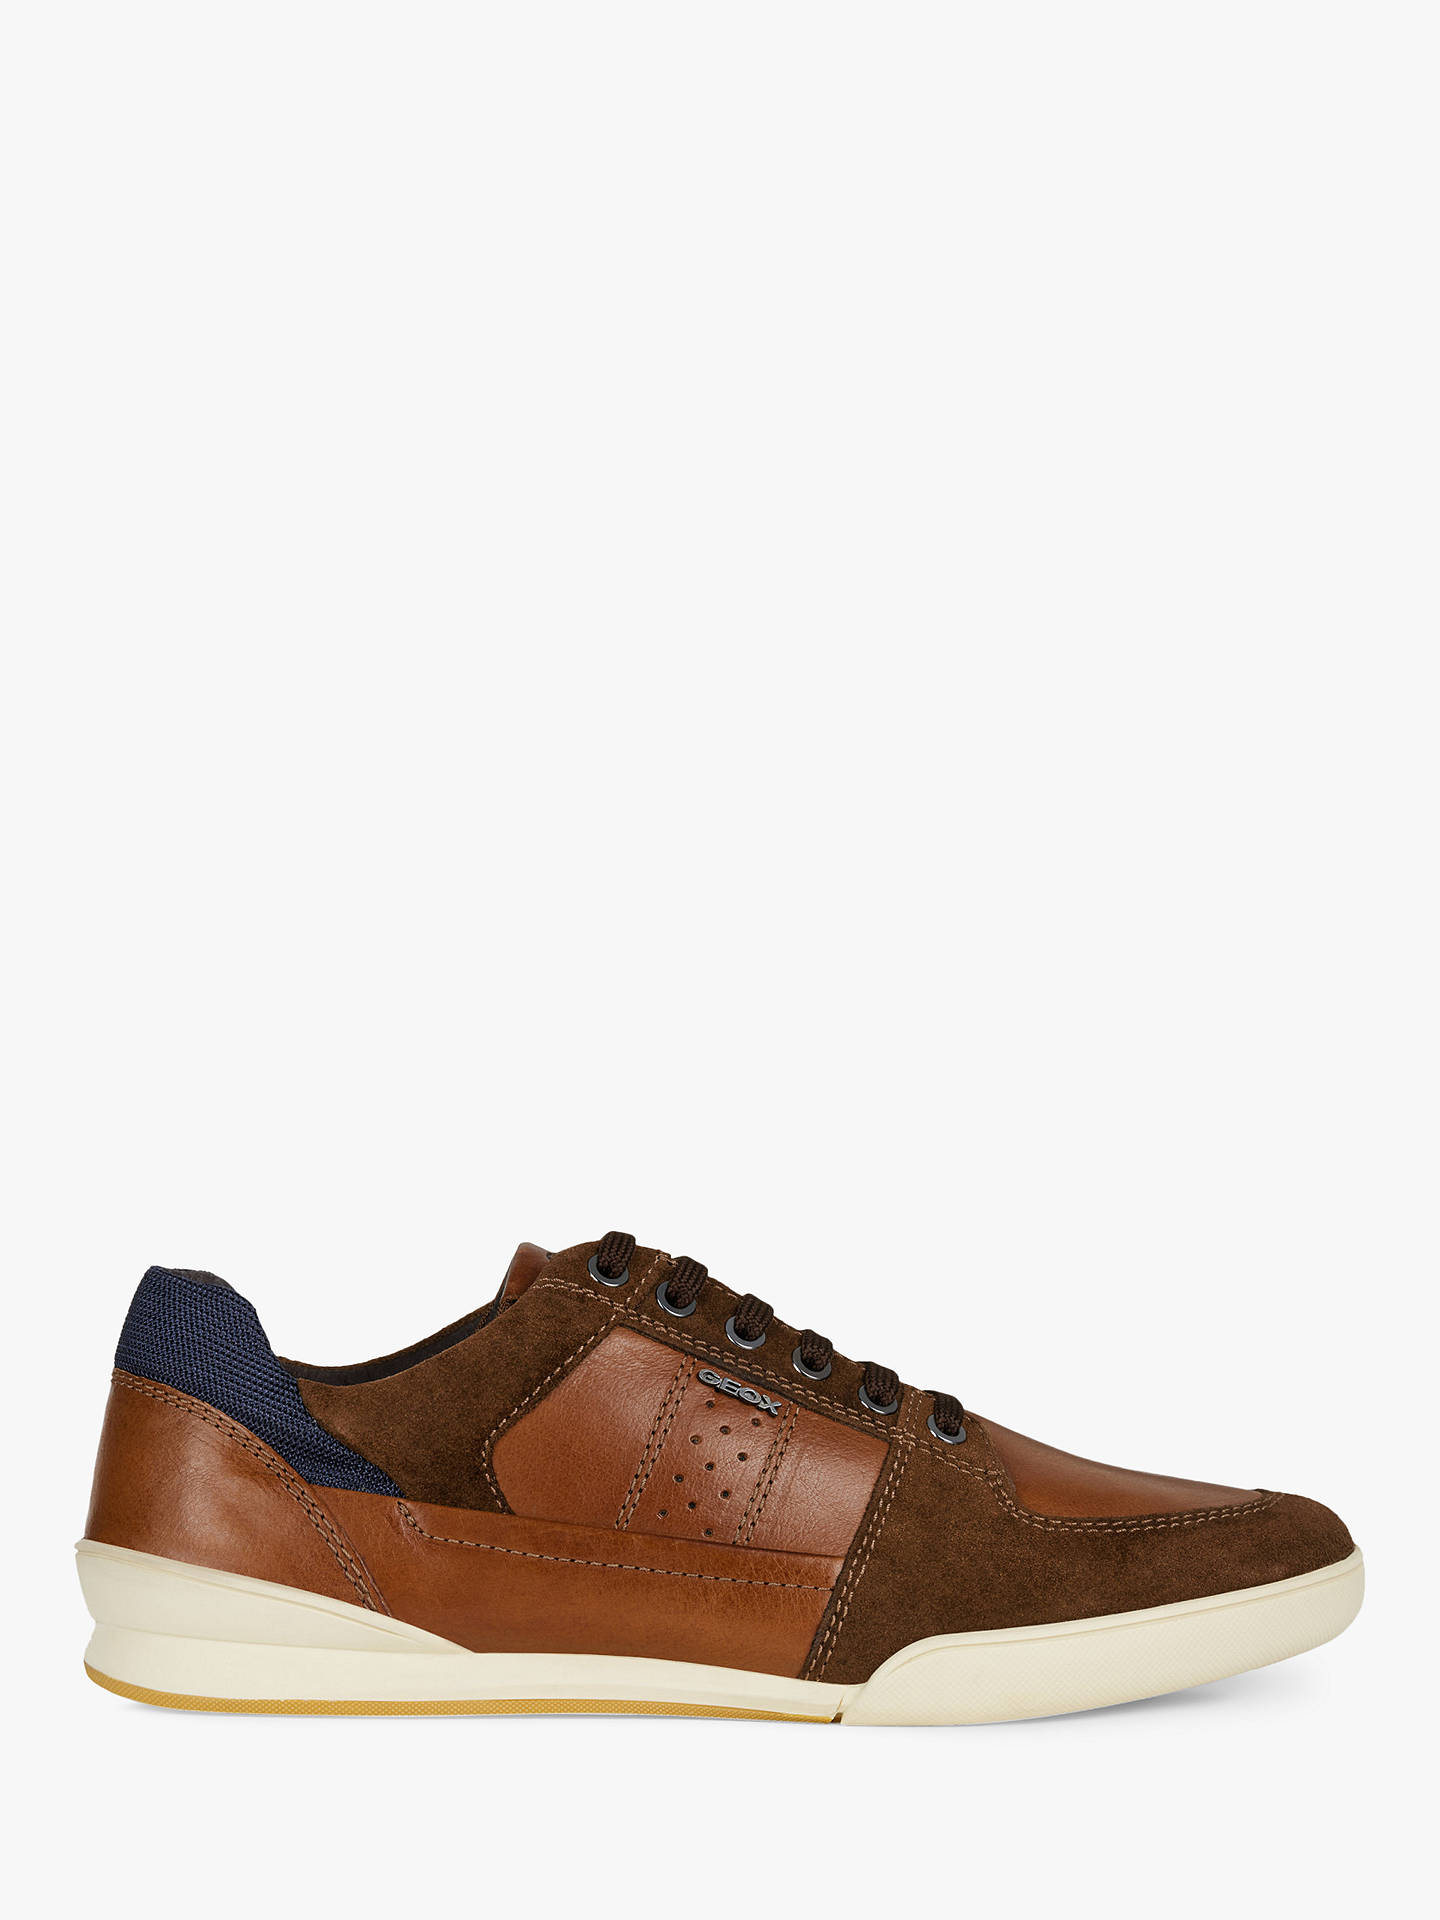 75f1b83ed1e Buy Geox Kristof Trainers, Brown, 7 Online at johnlewis.com ...